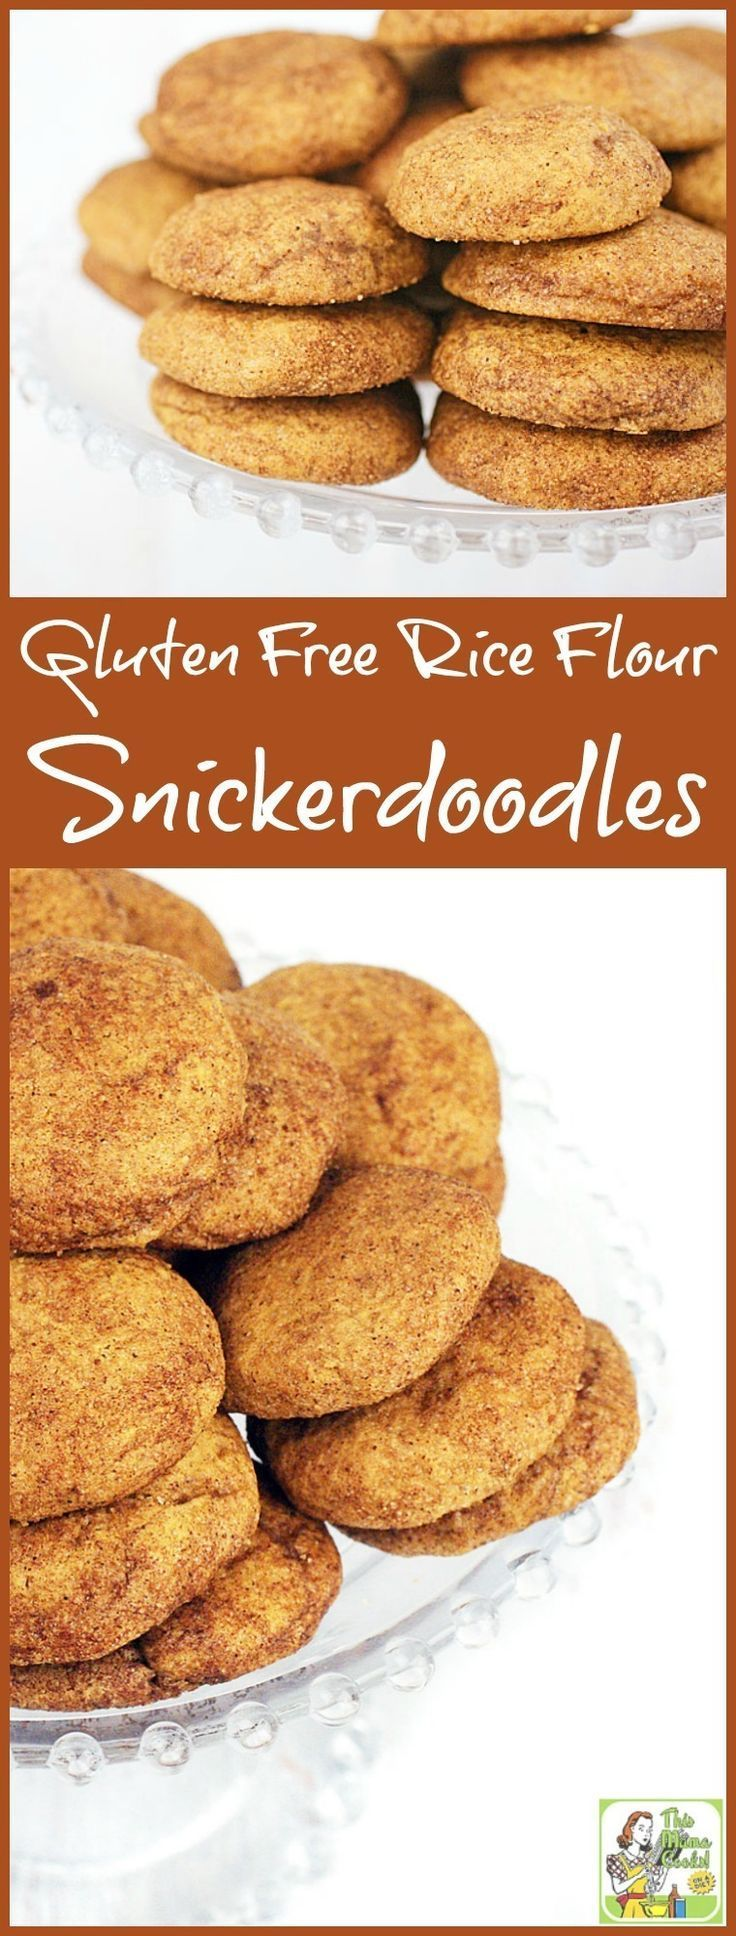 Looking for a gluten free cookie recipe? Try this easy to make Gluten Free Rice Flour Snickerdoodles cookie recipe. Perfect for cookie exchanges or homemade gifts.